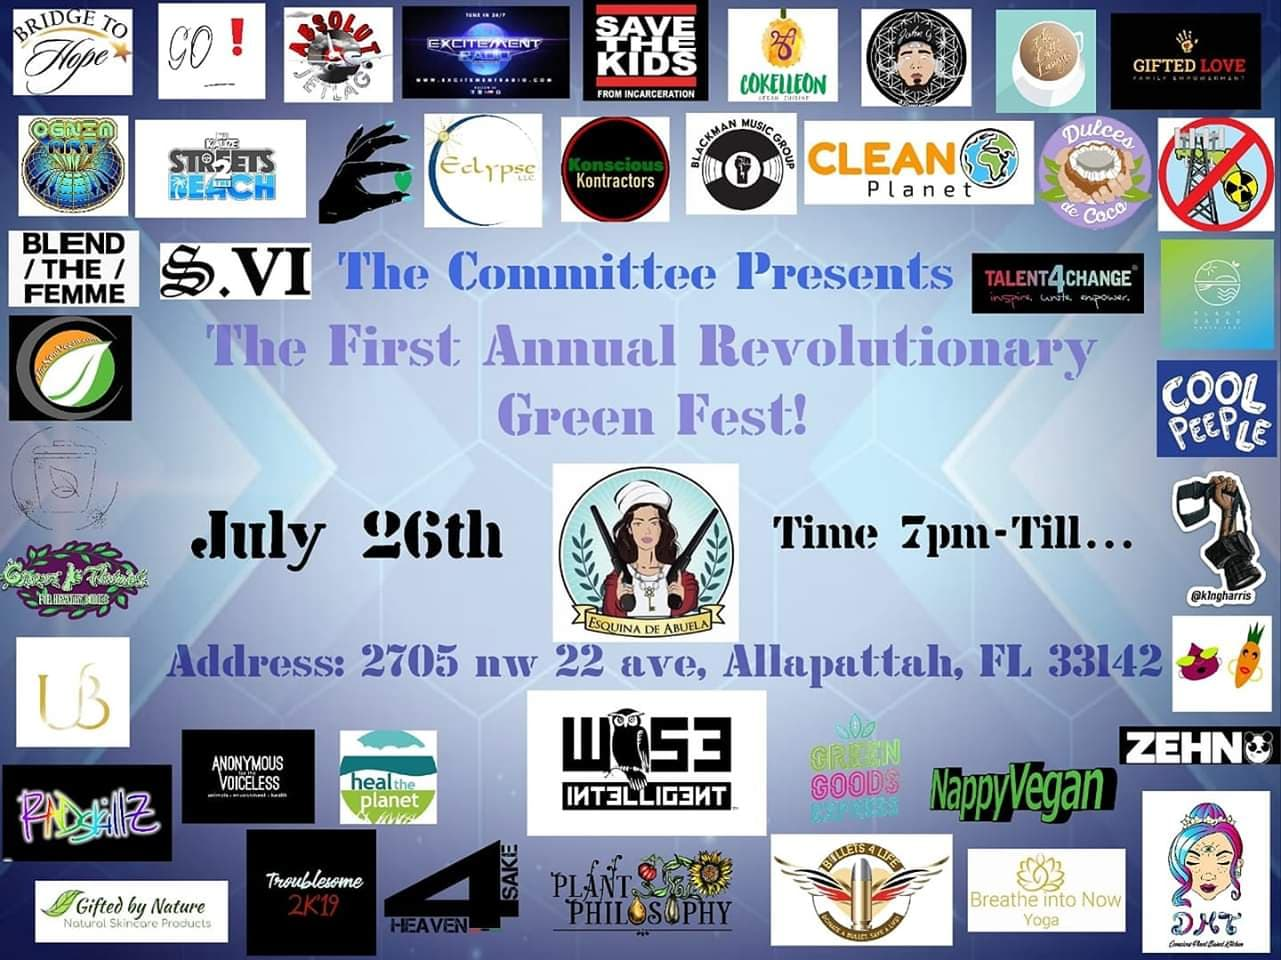 Miami, FL – July 26, 2019 – First Ever Revolutionary Green Fest